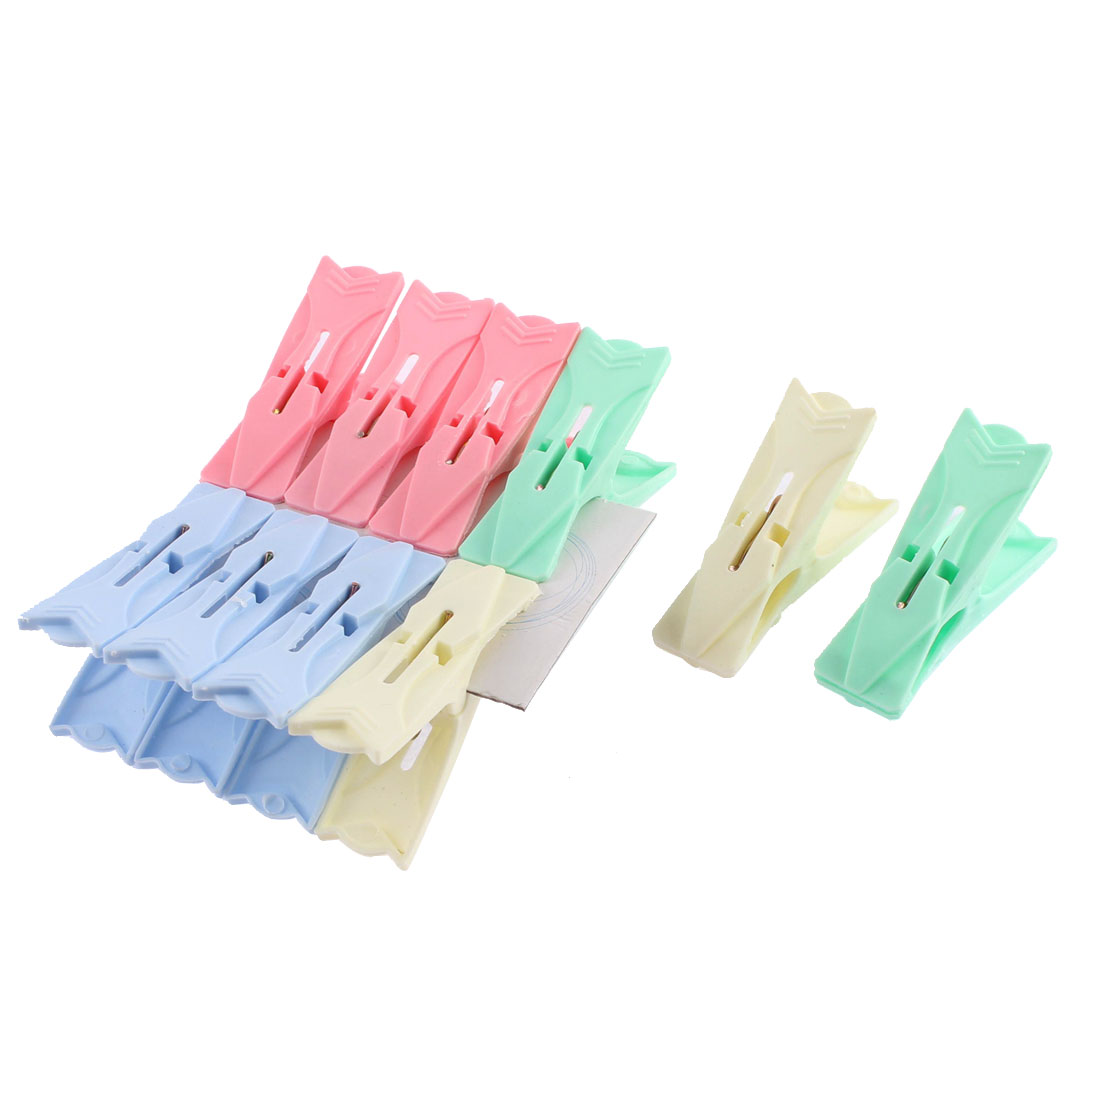 Socks Clothes Hanging Plastic Pins Clips Clamps 65mm Length Assorted Color 10 Pcs